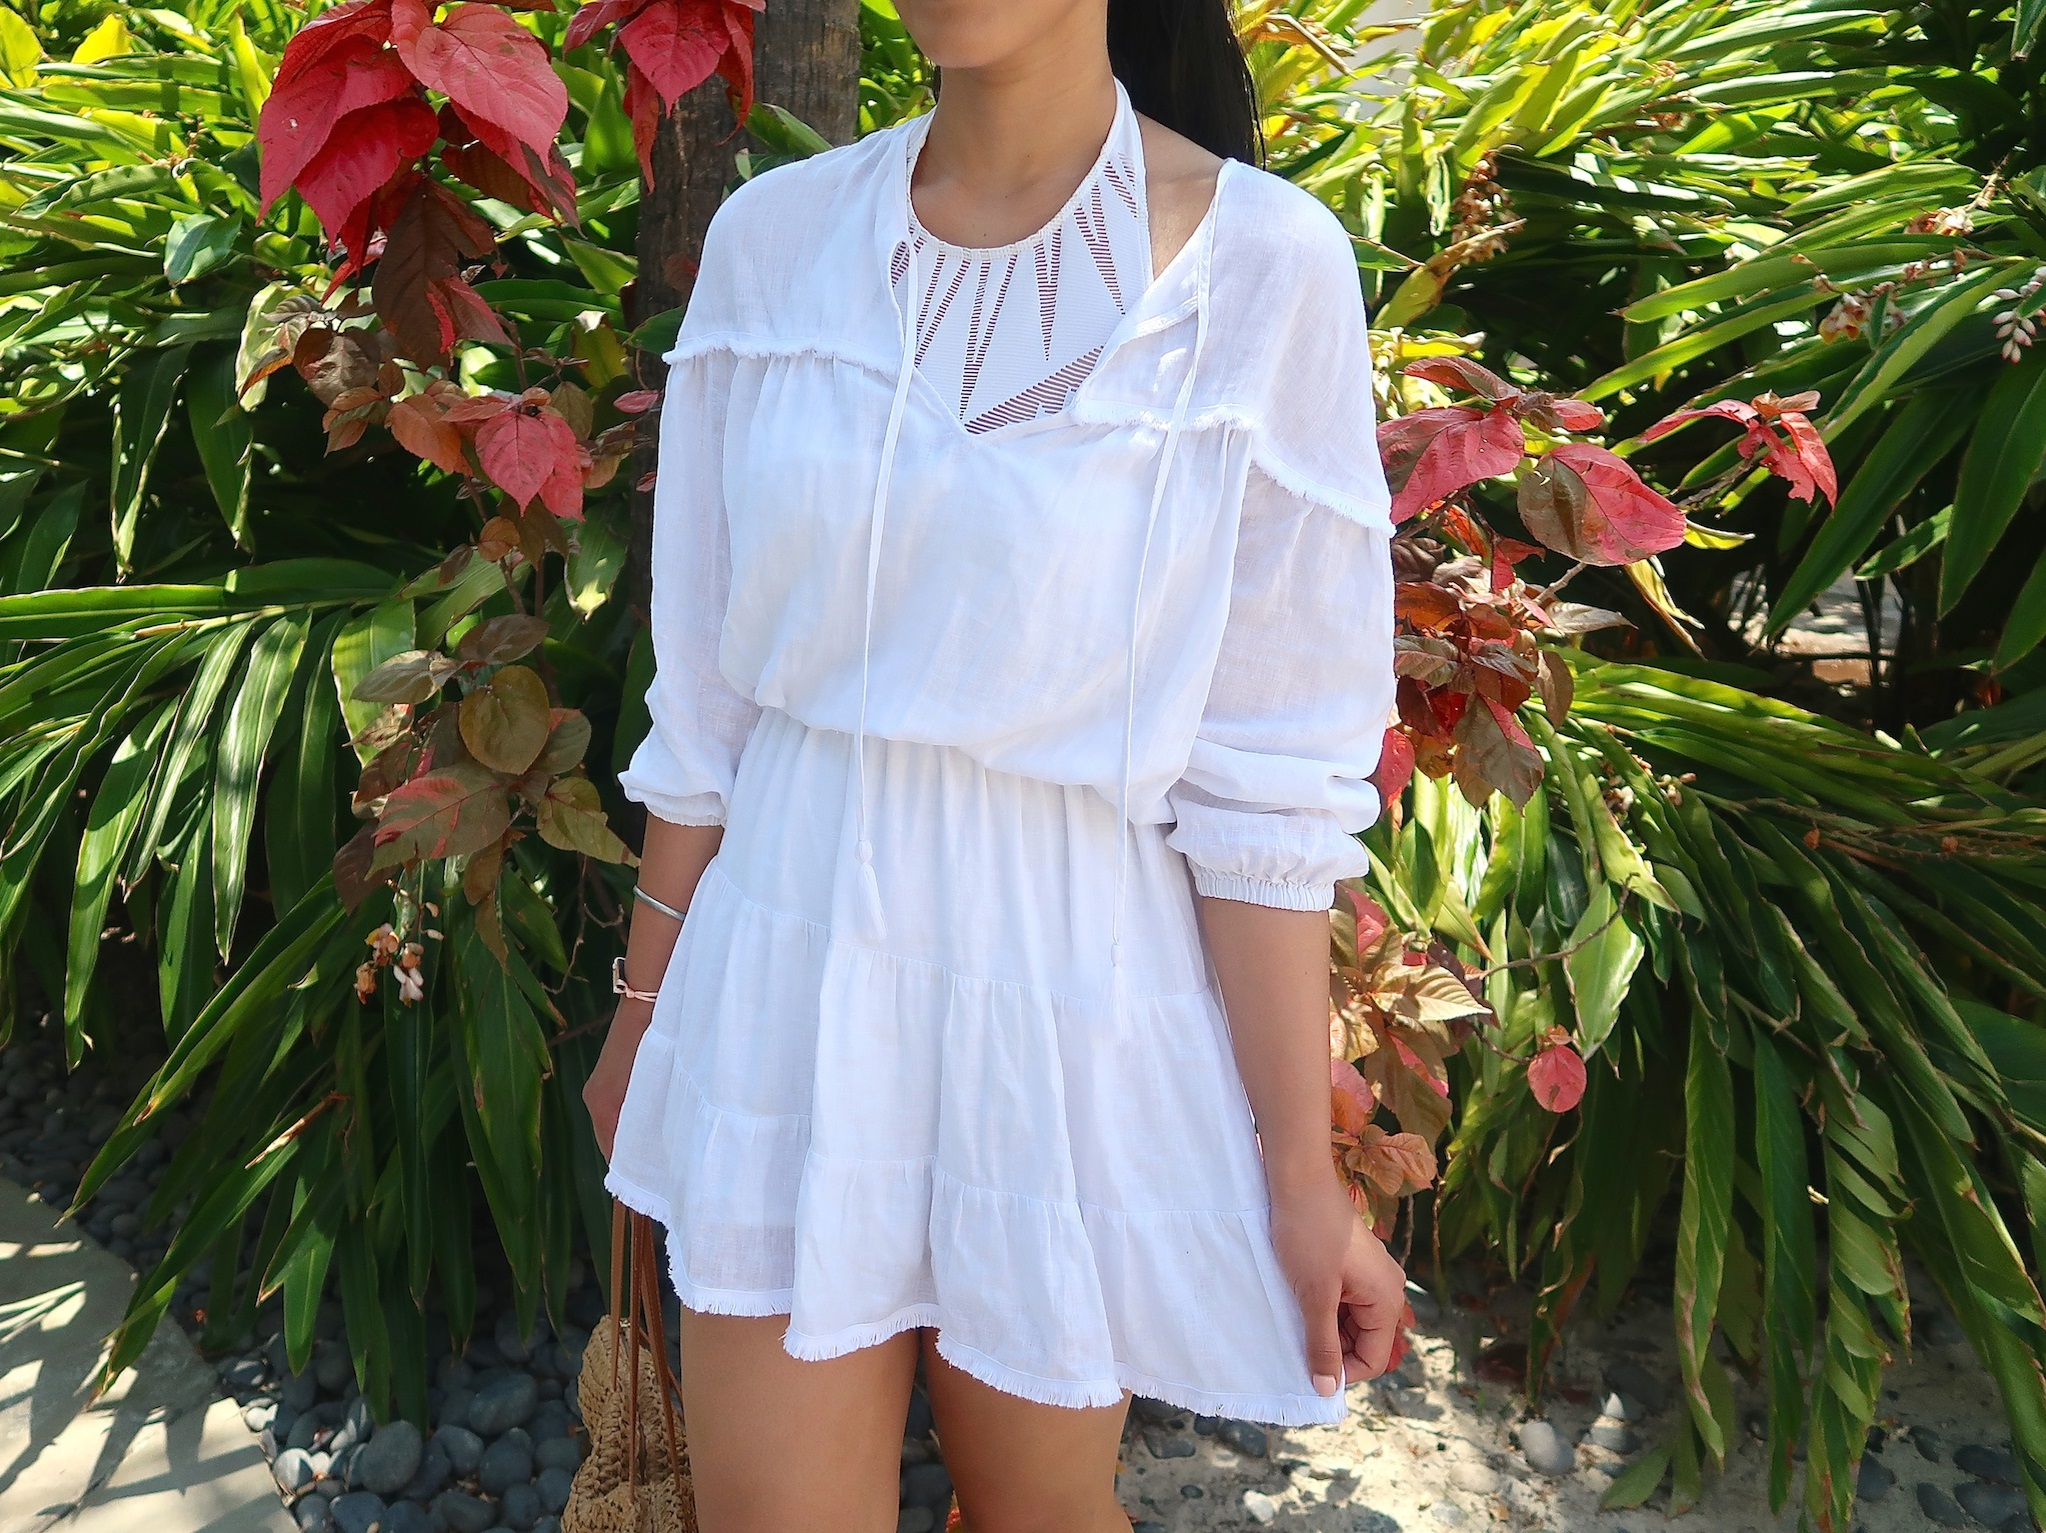 rails-white-dress-vacation-style-fashionista.JPG